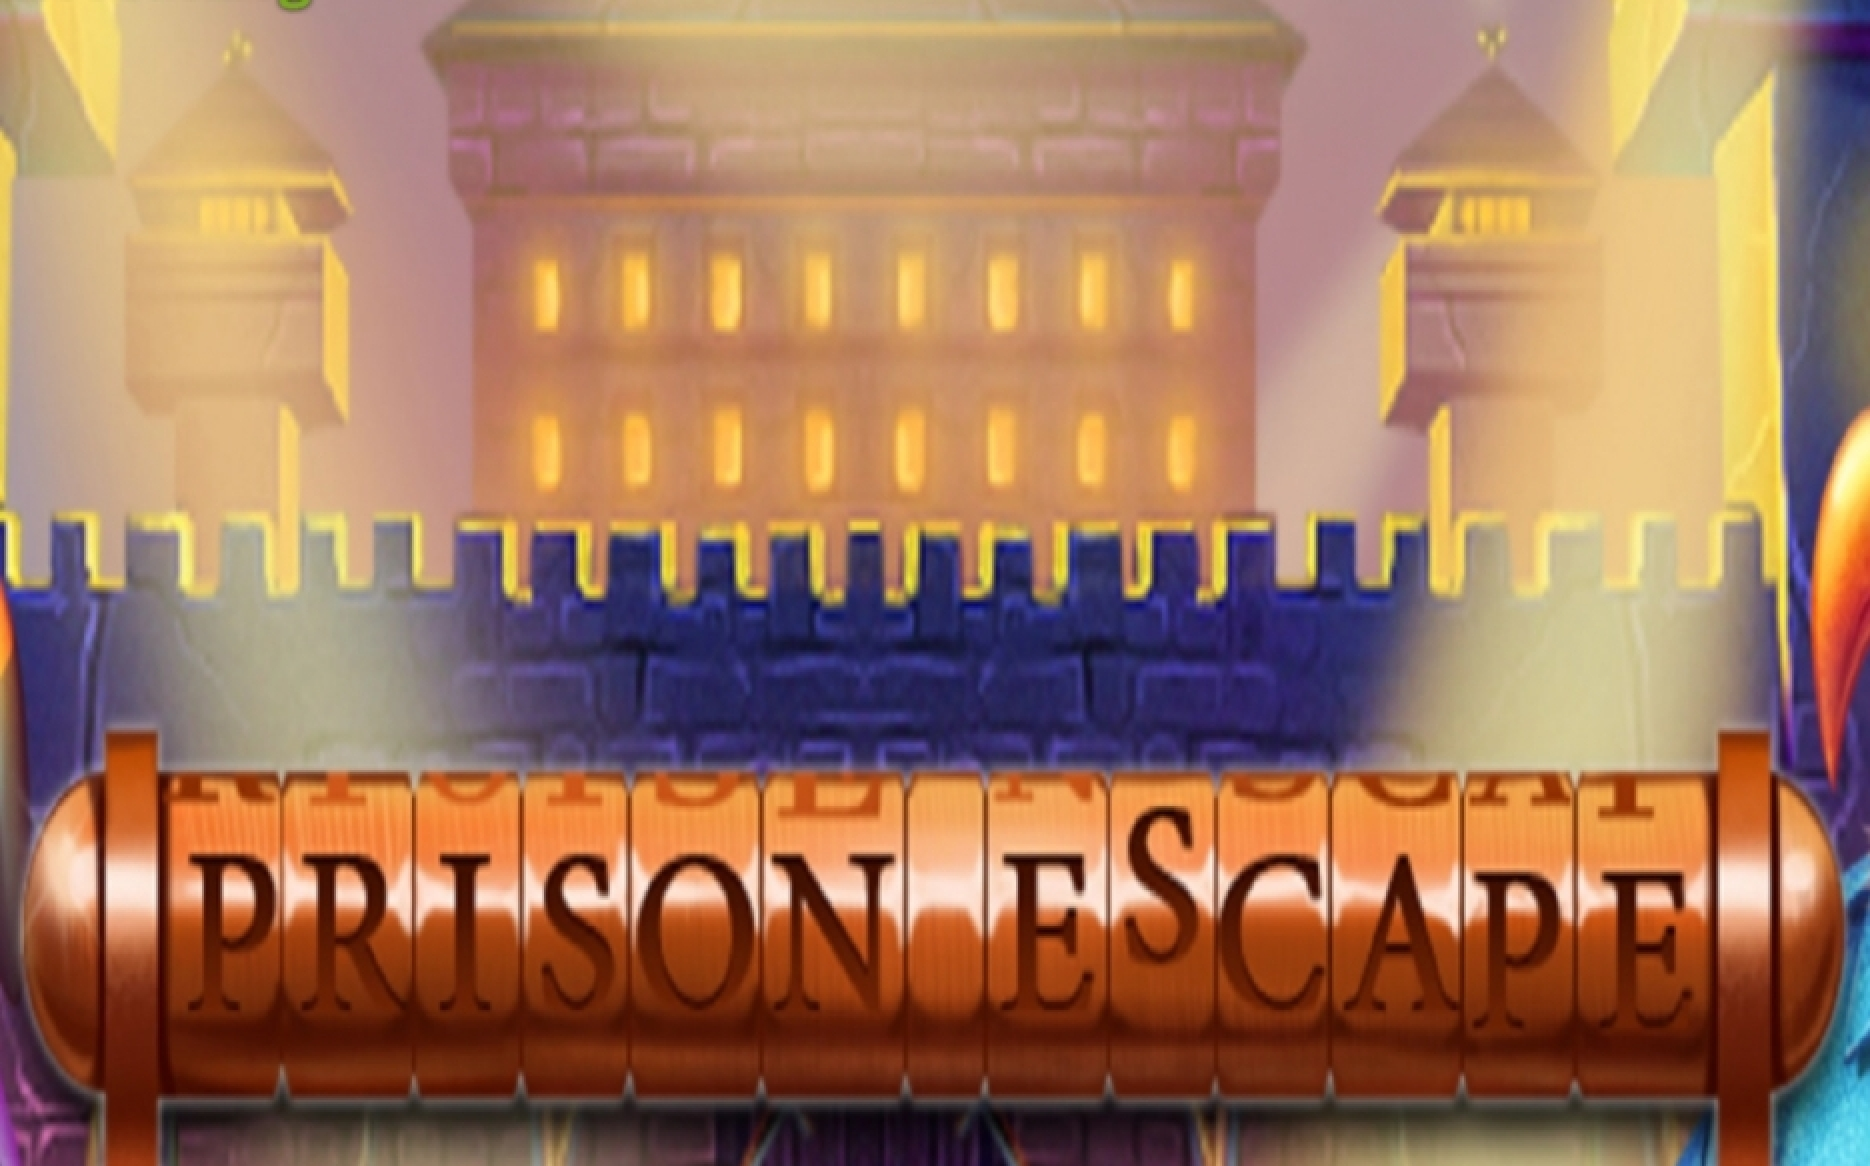 The Prison Escape (1X2gaming) Online Slot Demo Game by 1x2 Gaming